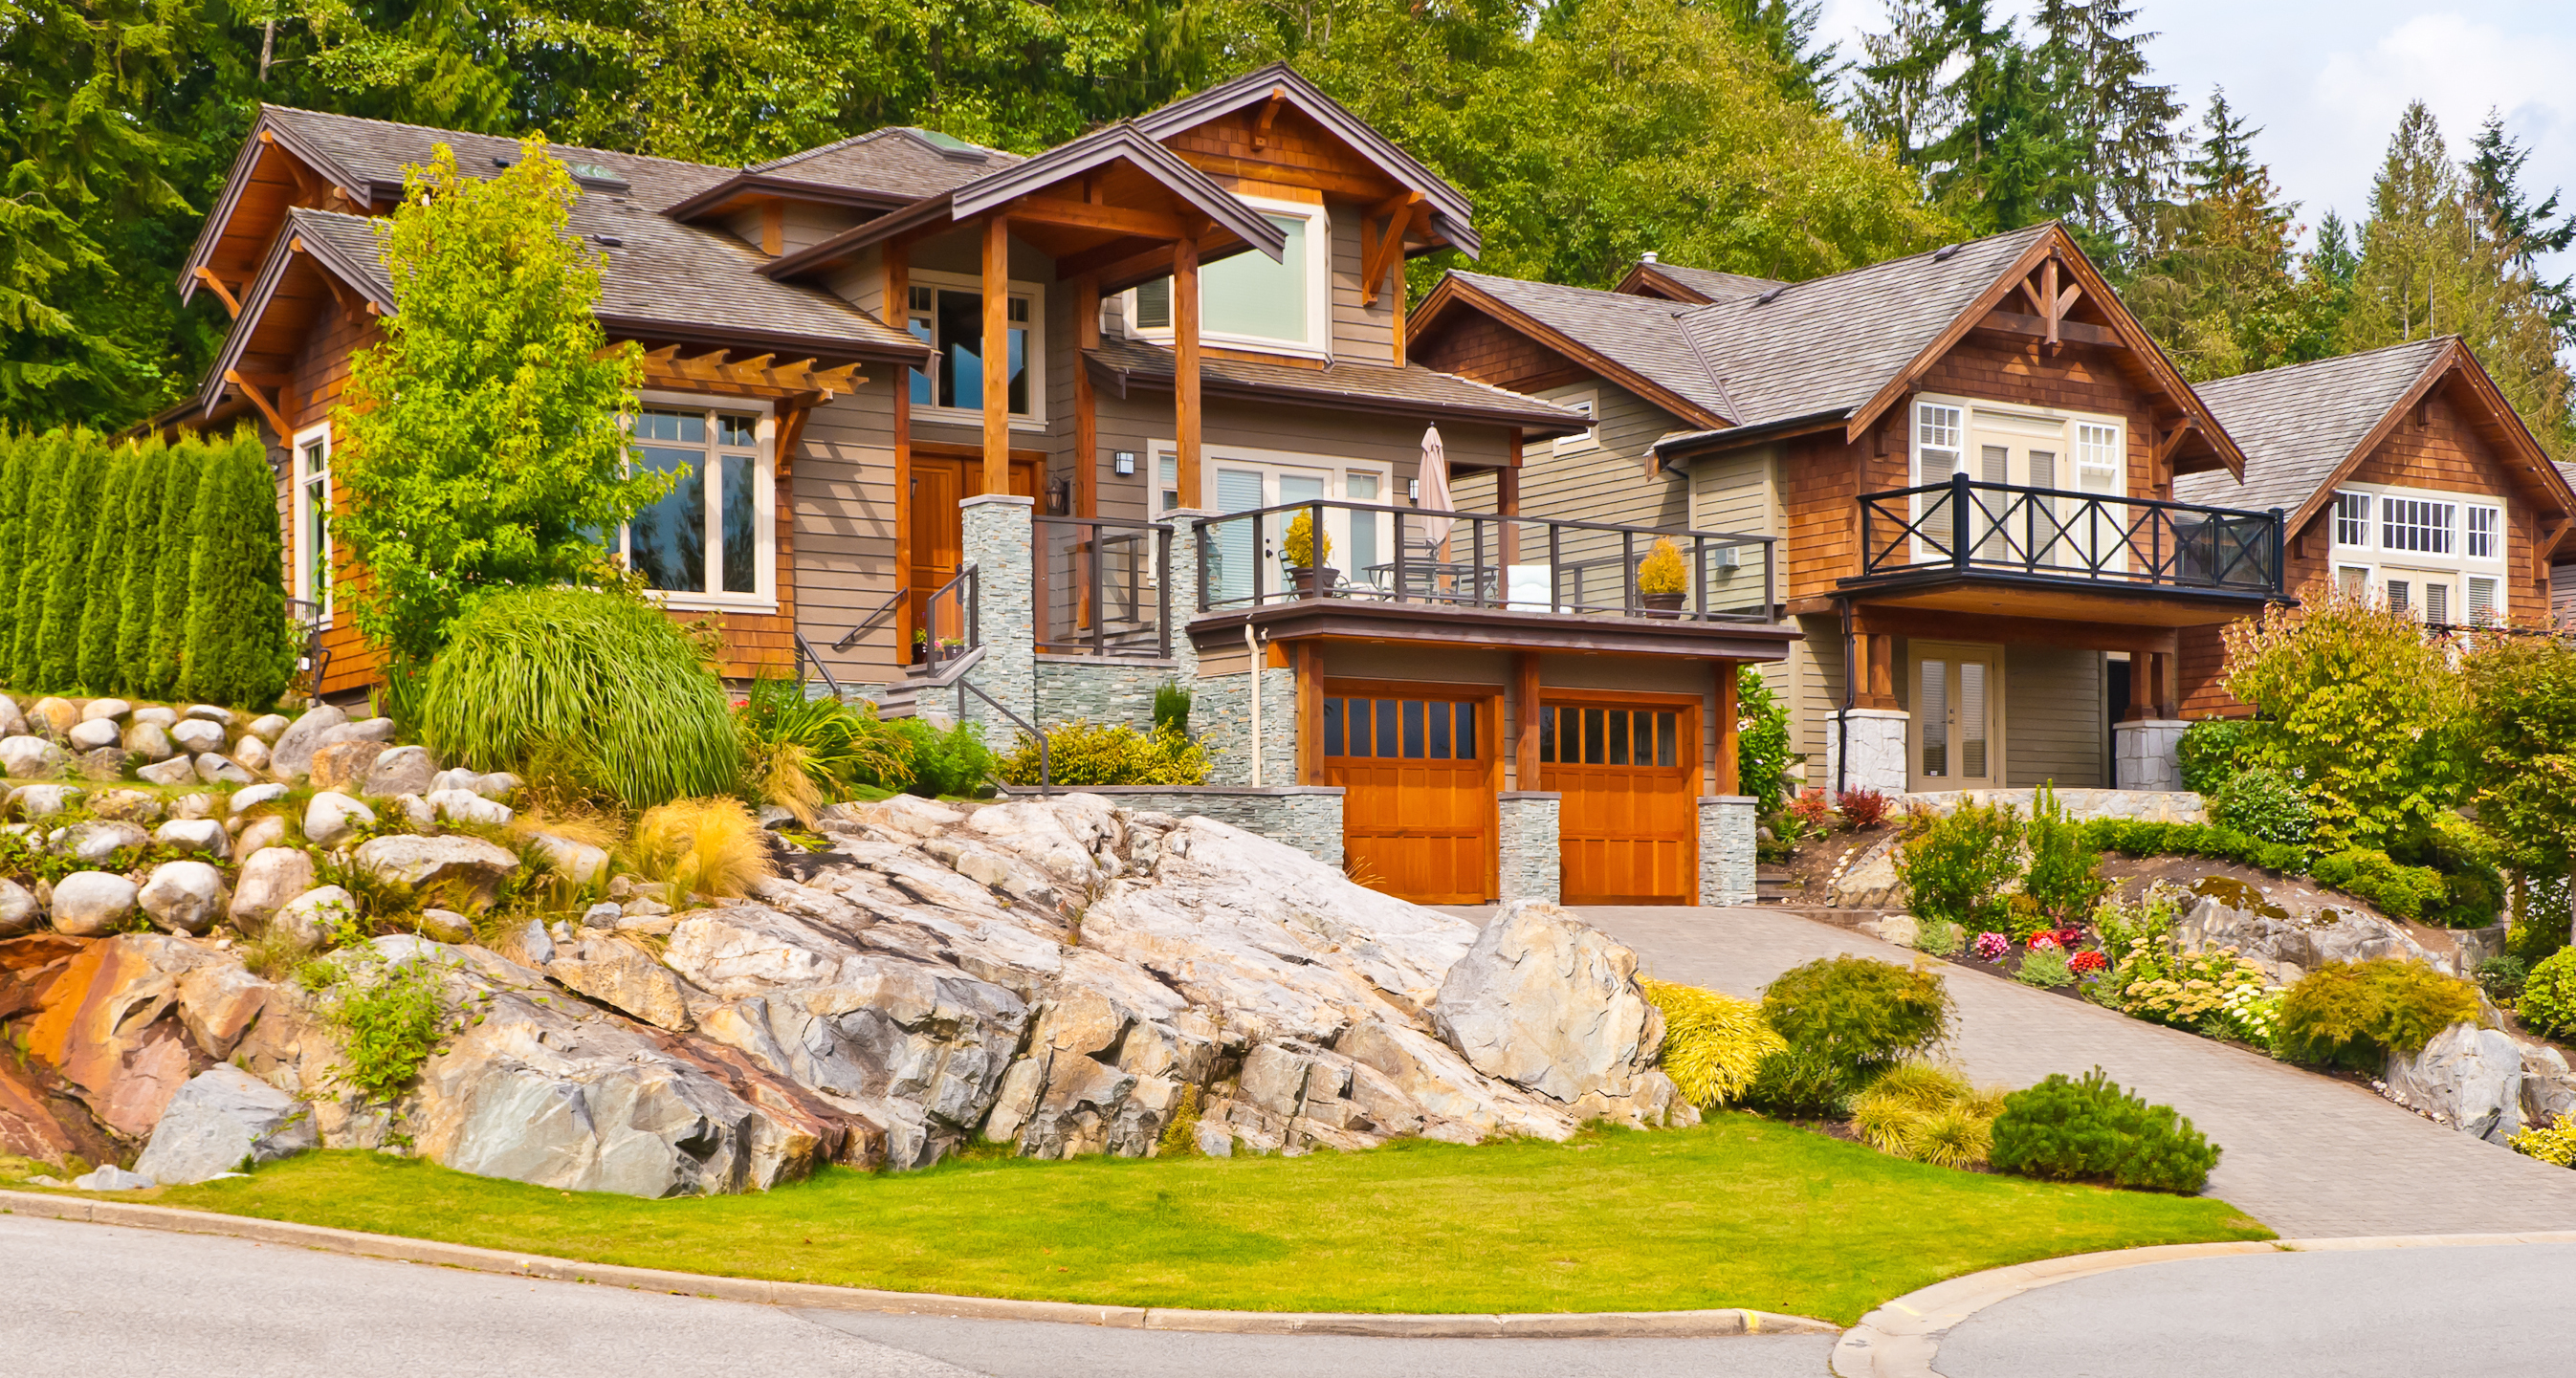 Banks Eal Estate Search All Beaverton Homes And Condos